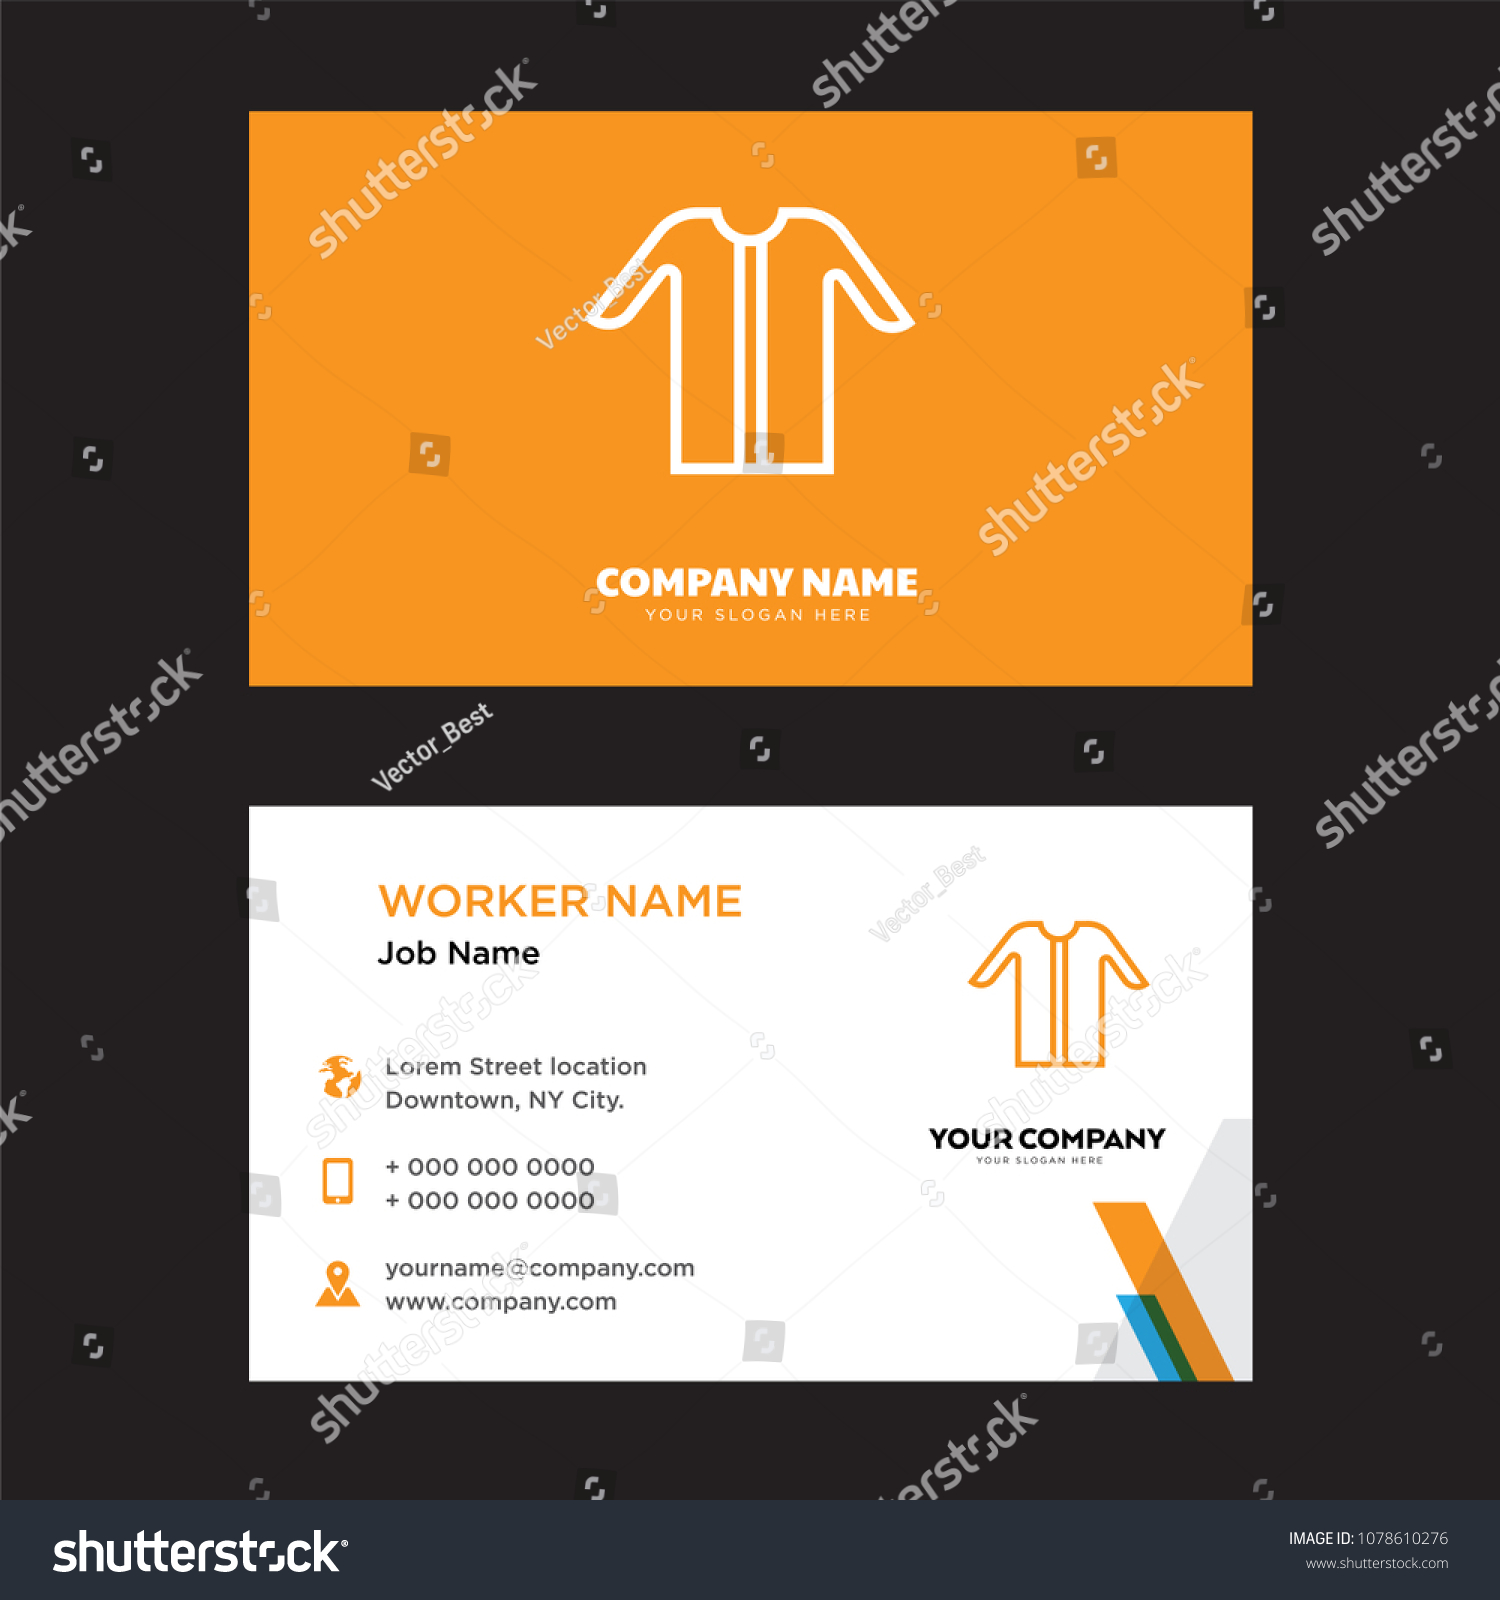 Tshirt Business Card Design Template Visiting Stock Vector ...